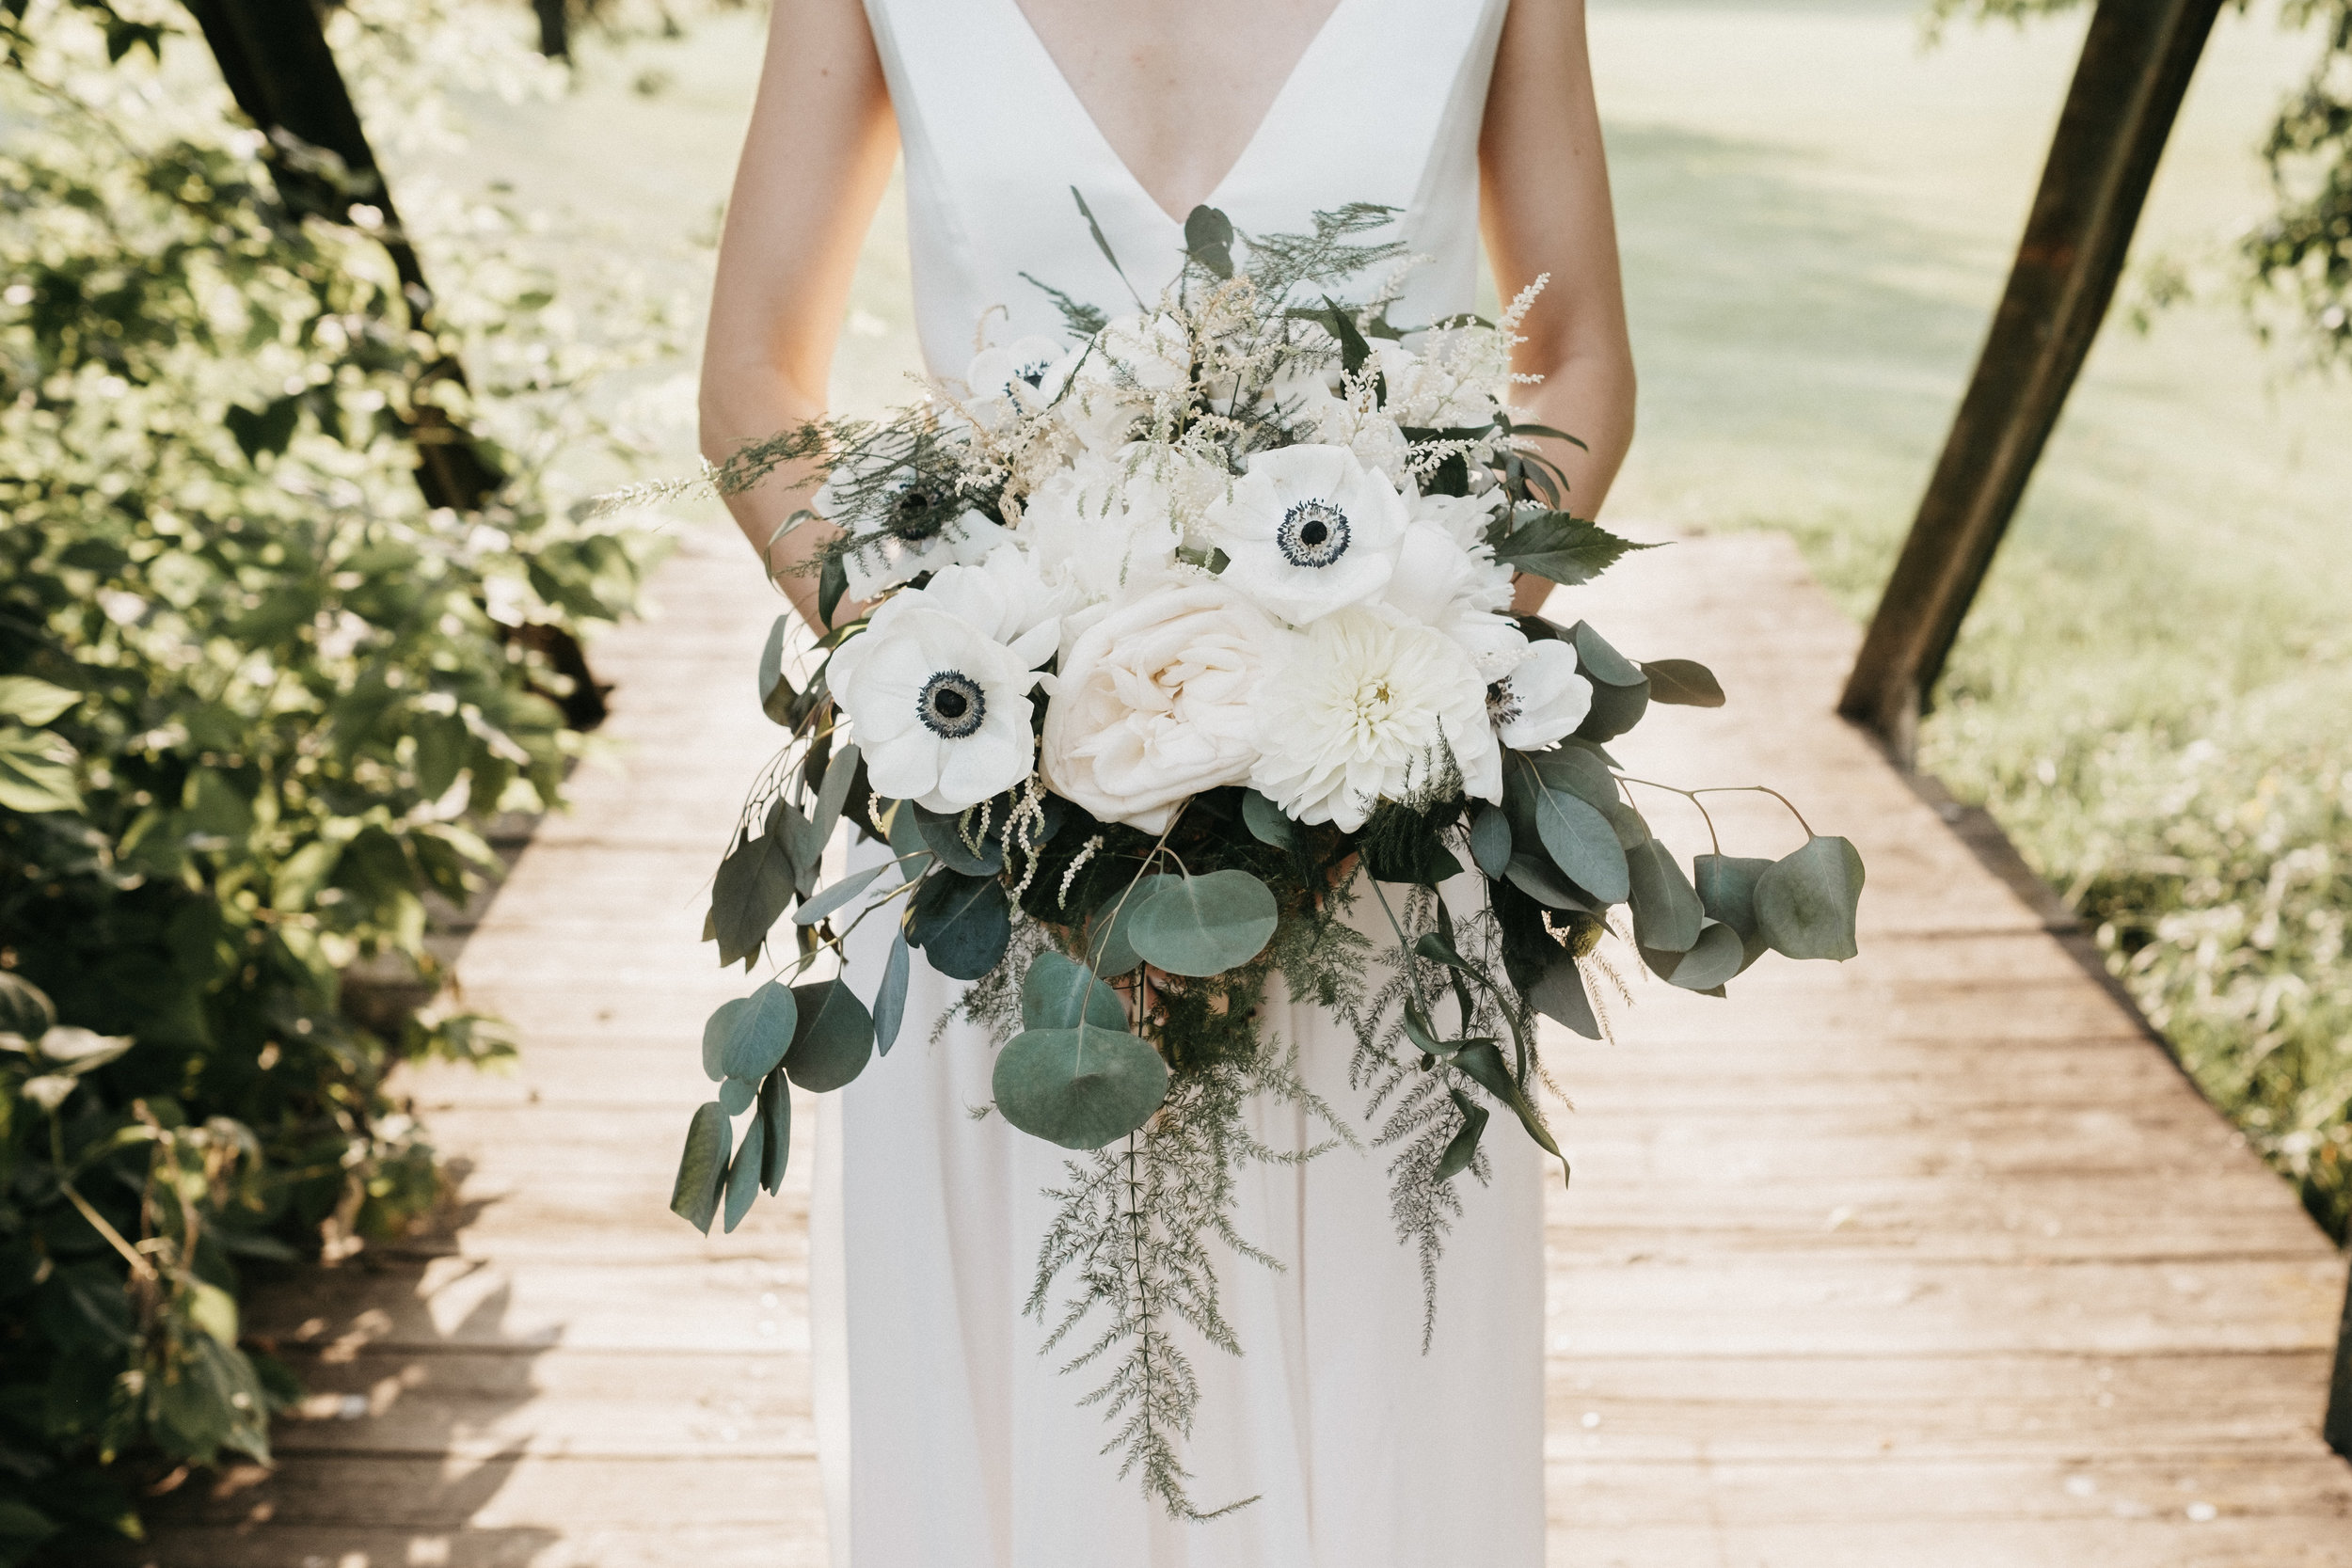 bridal_bouquet_white_flowers_greenery_anemone.jpg